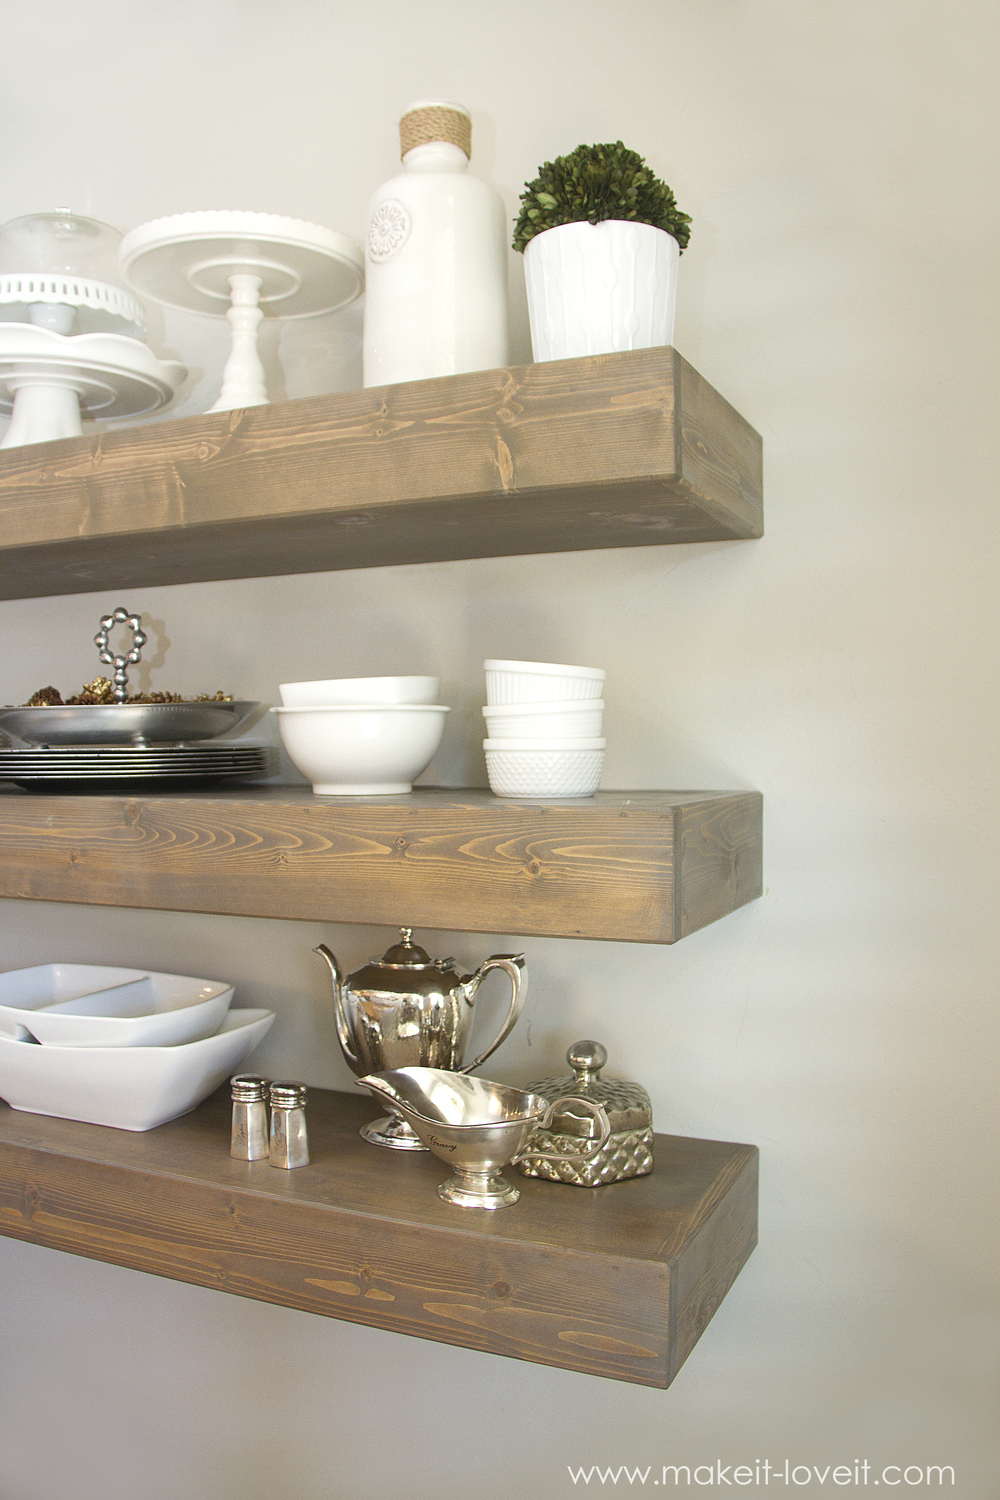 how build simple floating shelves for any room the house img deep shelf small shoe hanger wall mounted bunnings modern over toilet storage ikea corner bookcase bookshelf cupboard